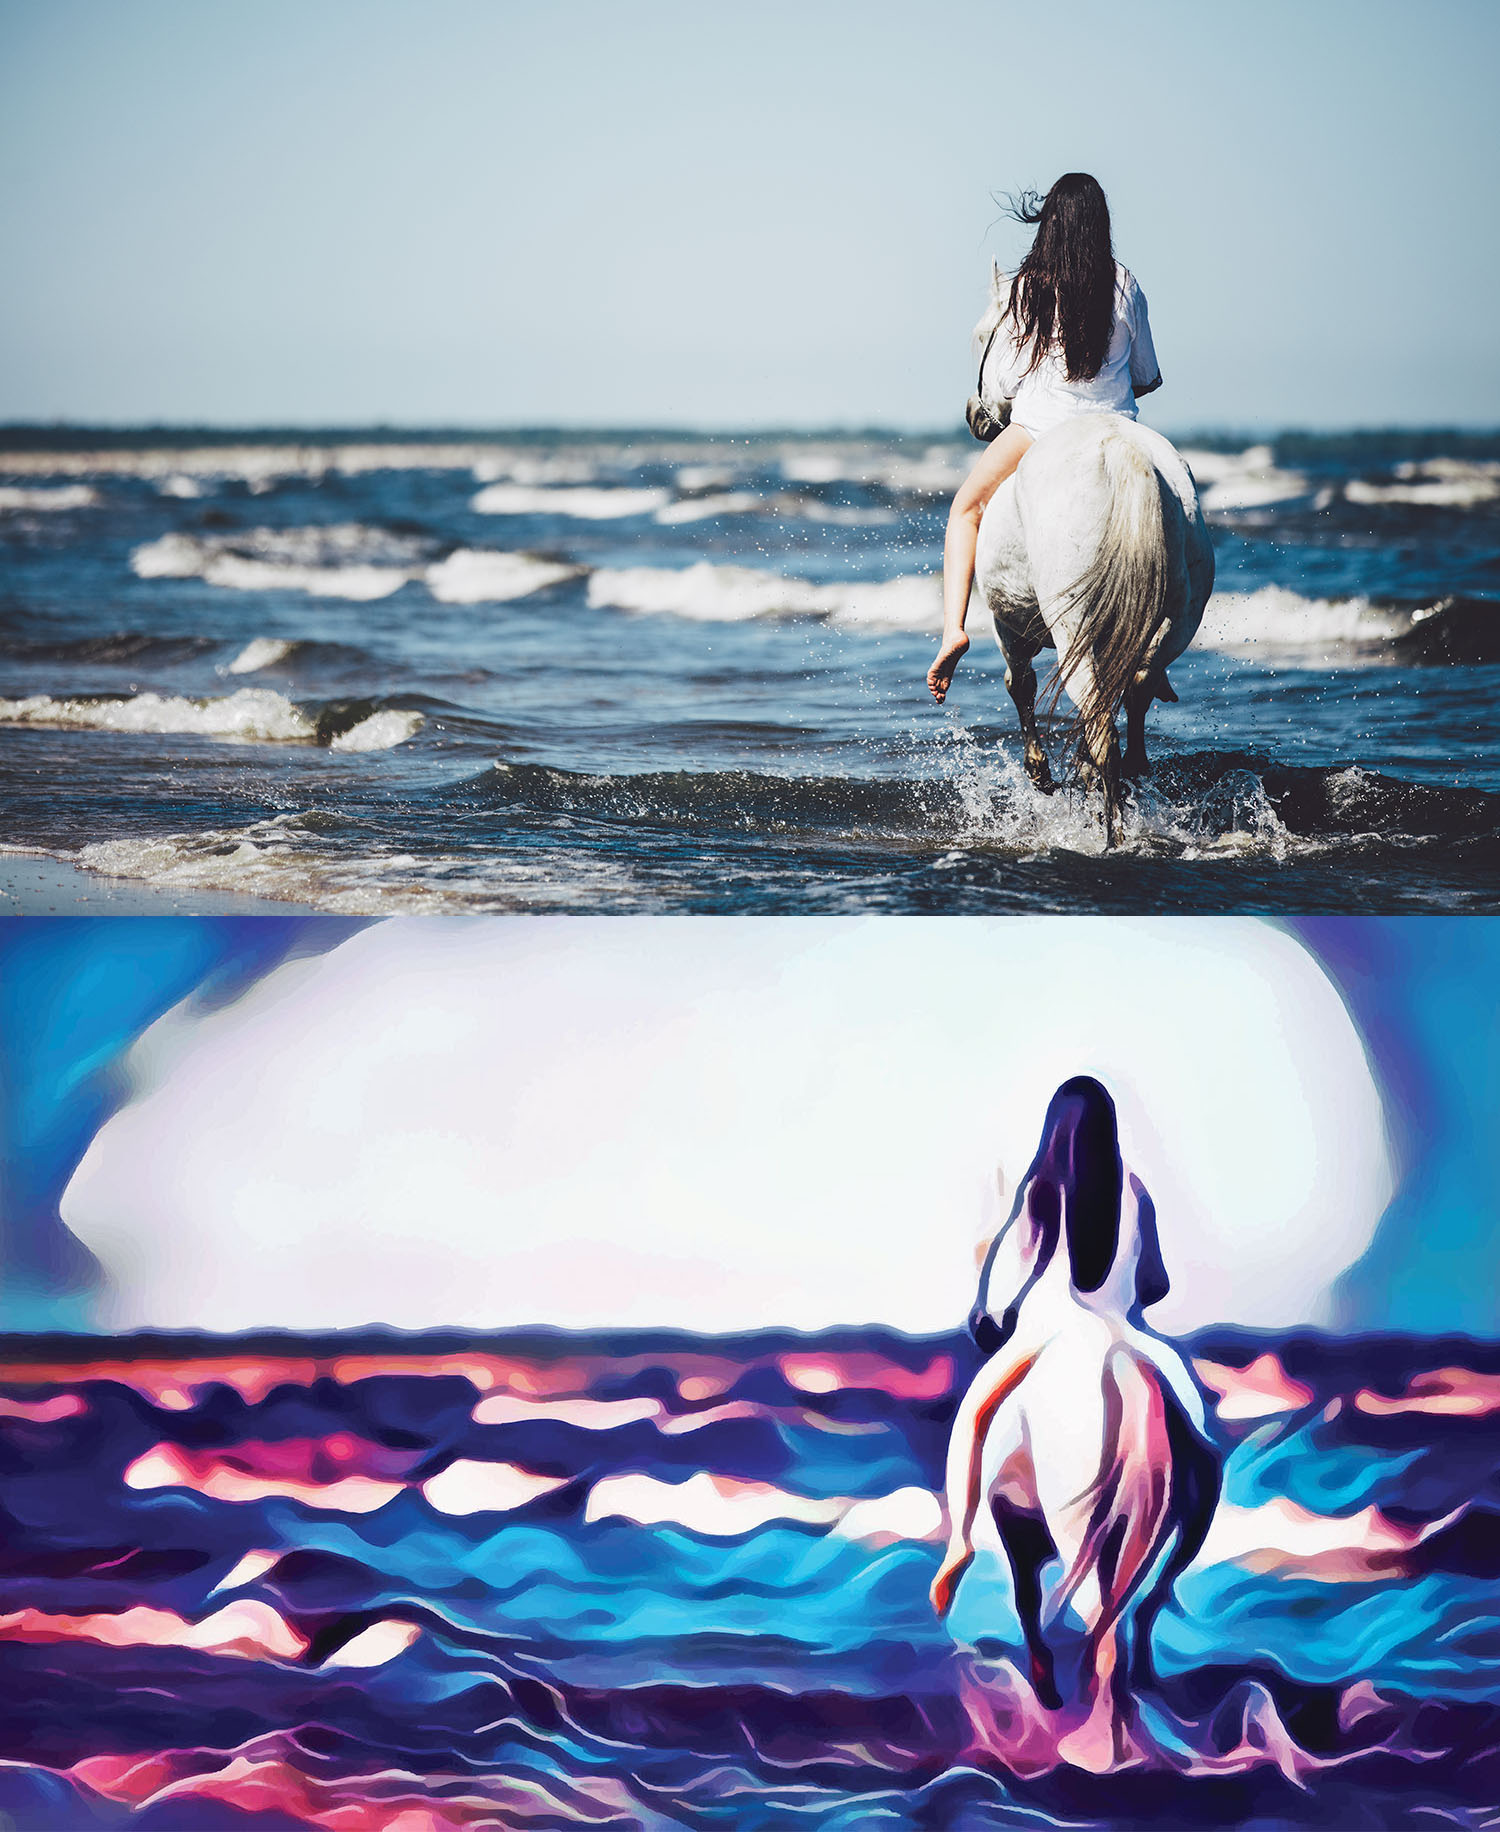 Before and after stylized Image of a woman riding a horse into the surf on a beach